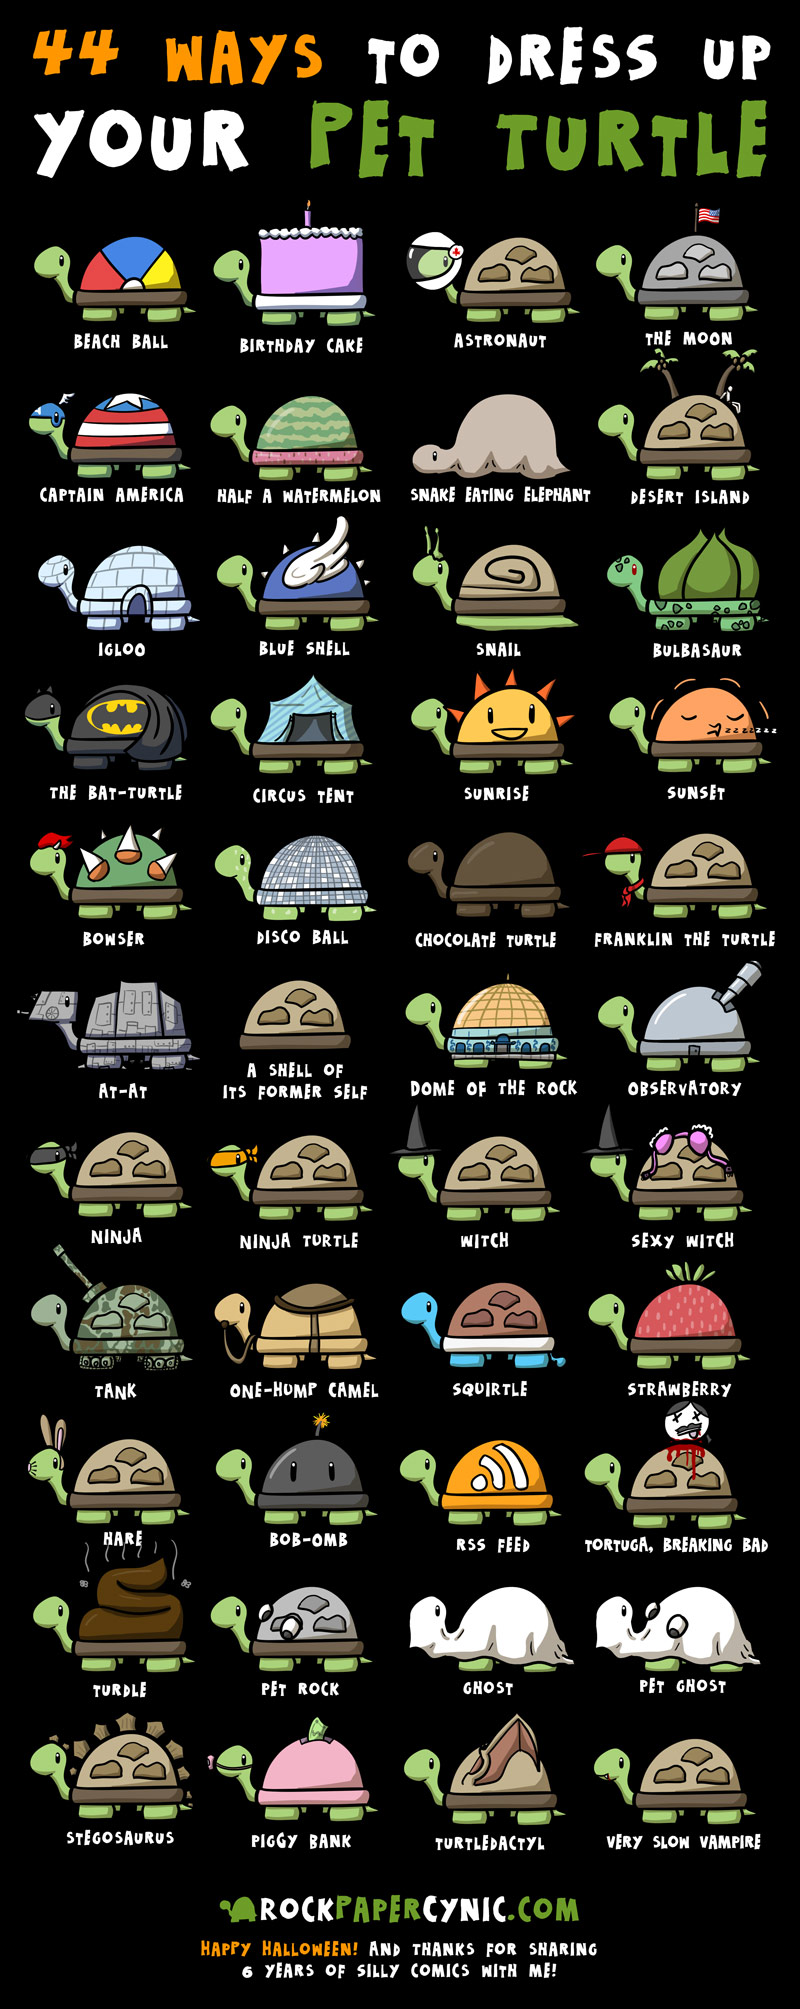 44 costume ideas for your pet turtle